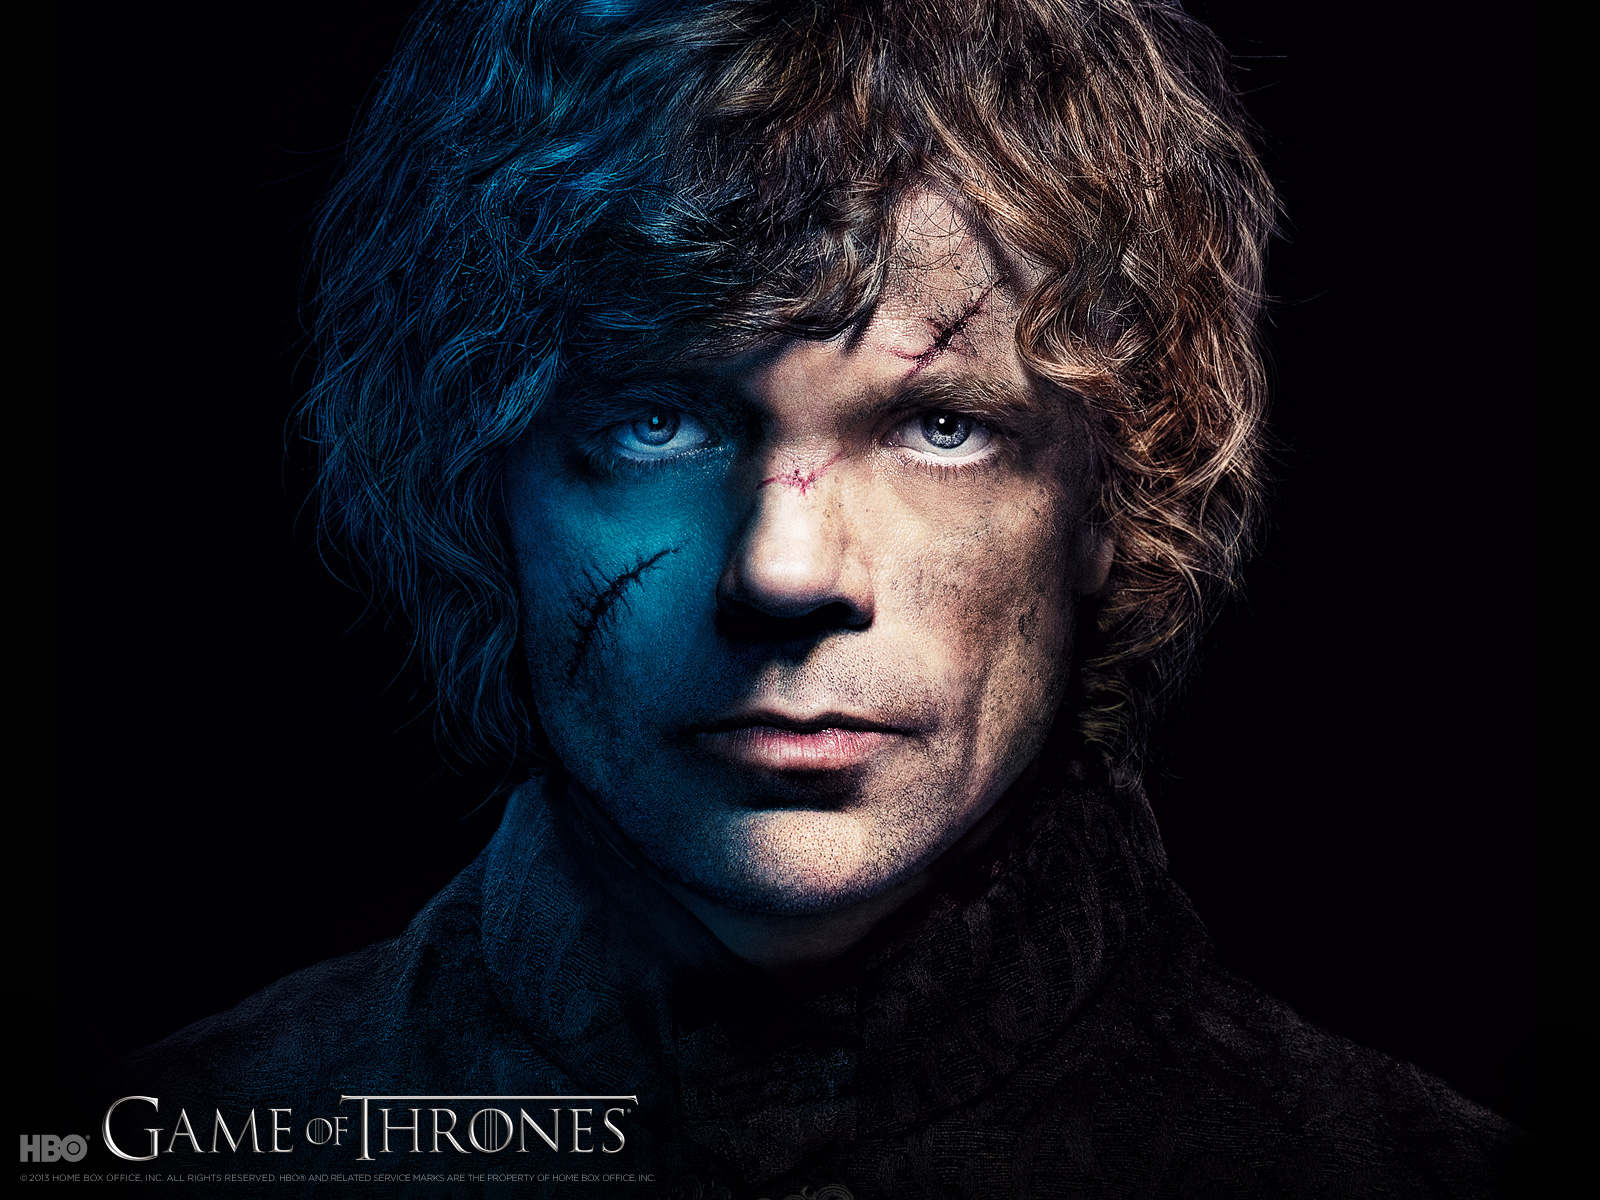 game of thrones wallpaper,face,head,chin,cheek,nose